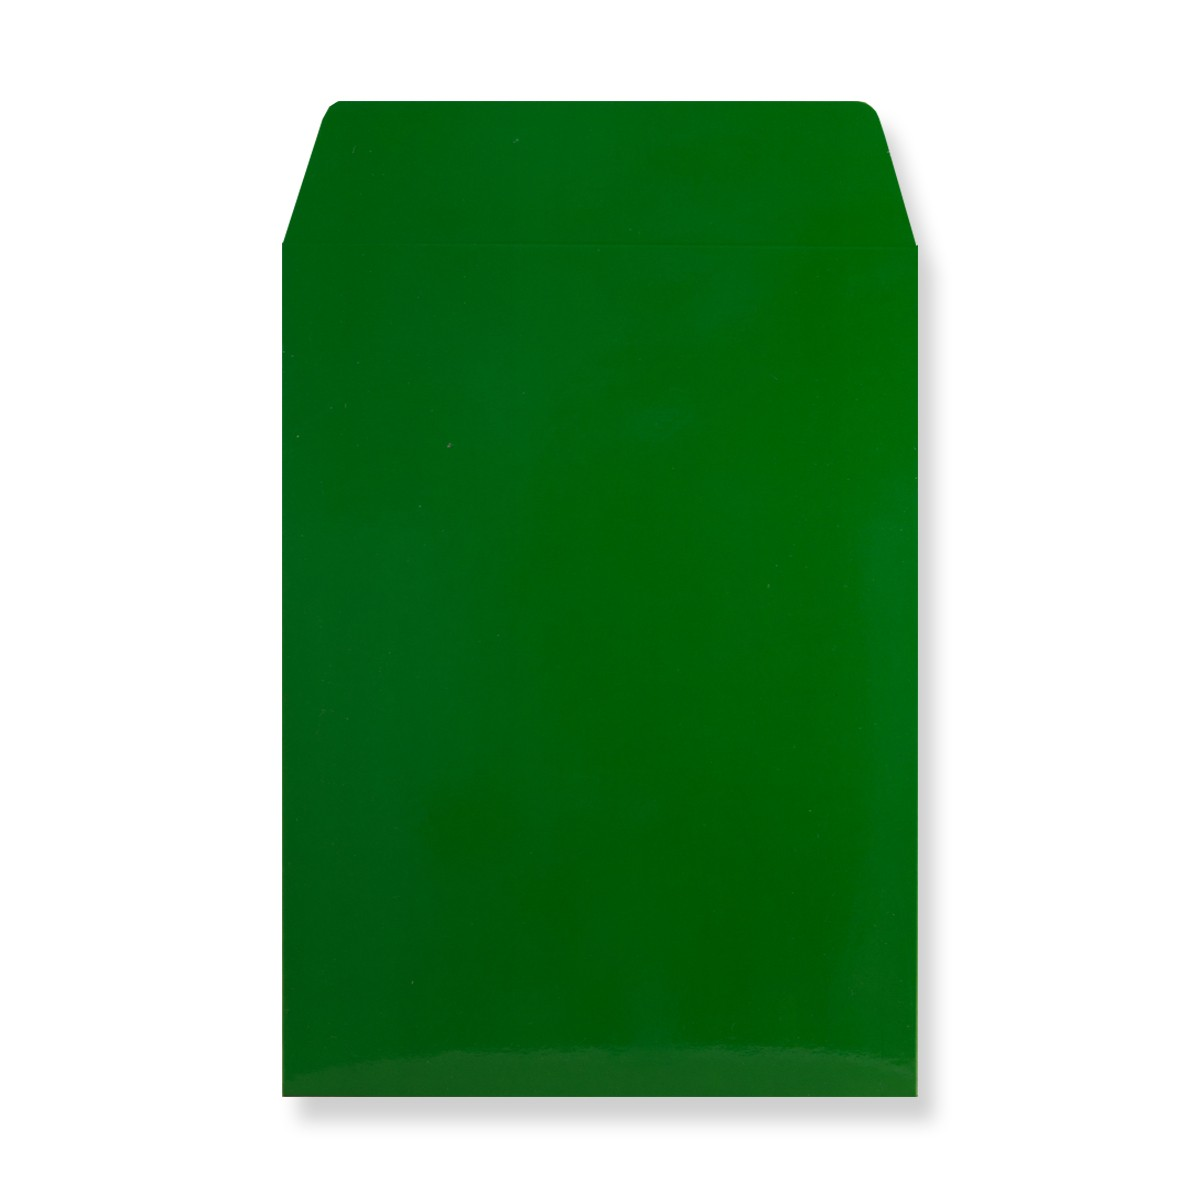 C4 GREEN ALL BOARD ENVELOPES